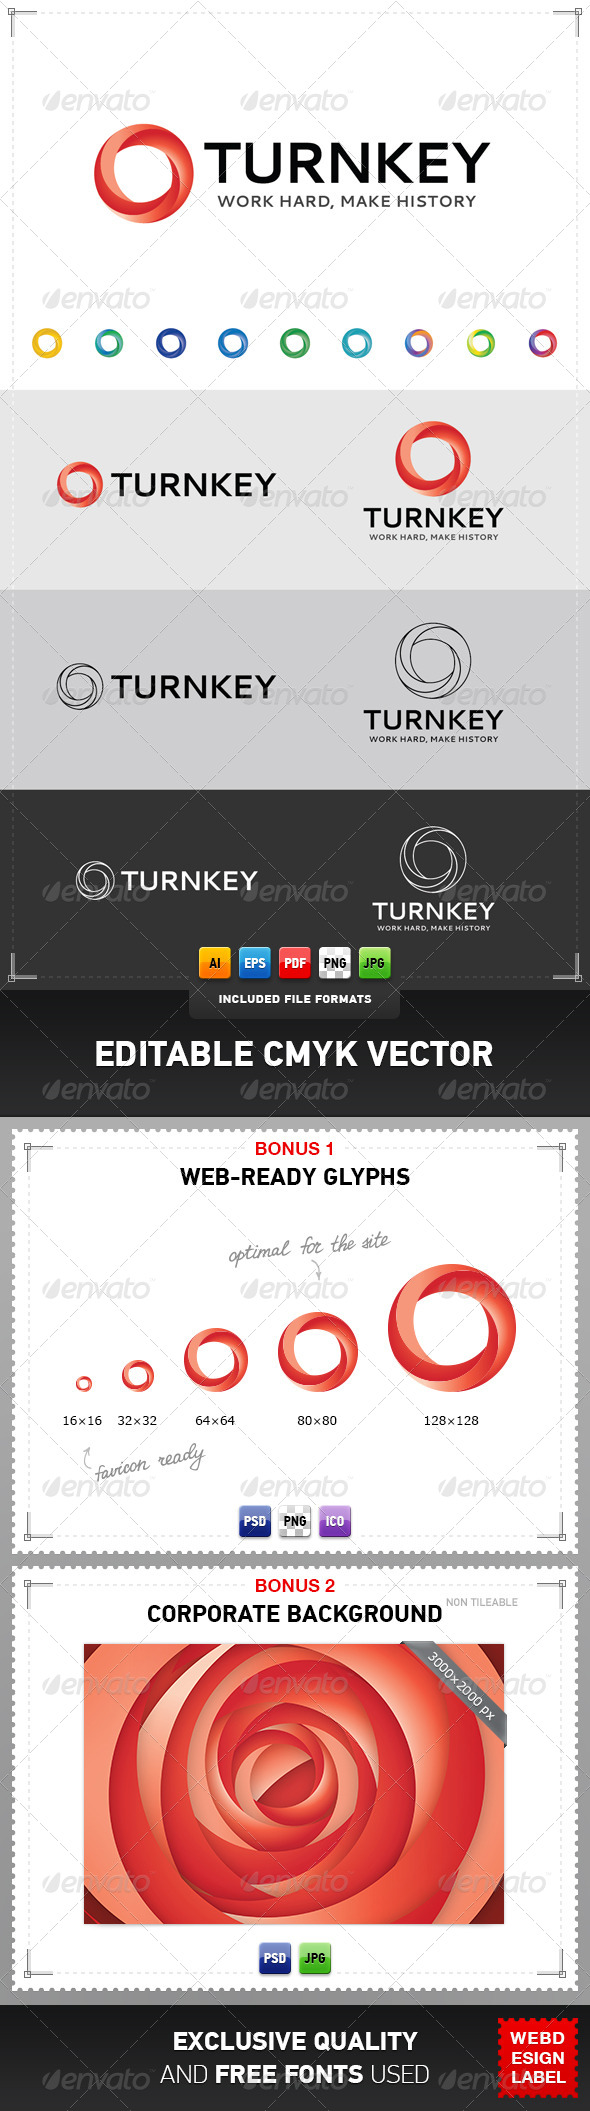 GraphicRiver Turnkey Business Consulting Logo 4077361